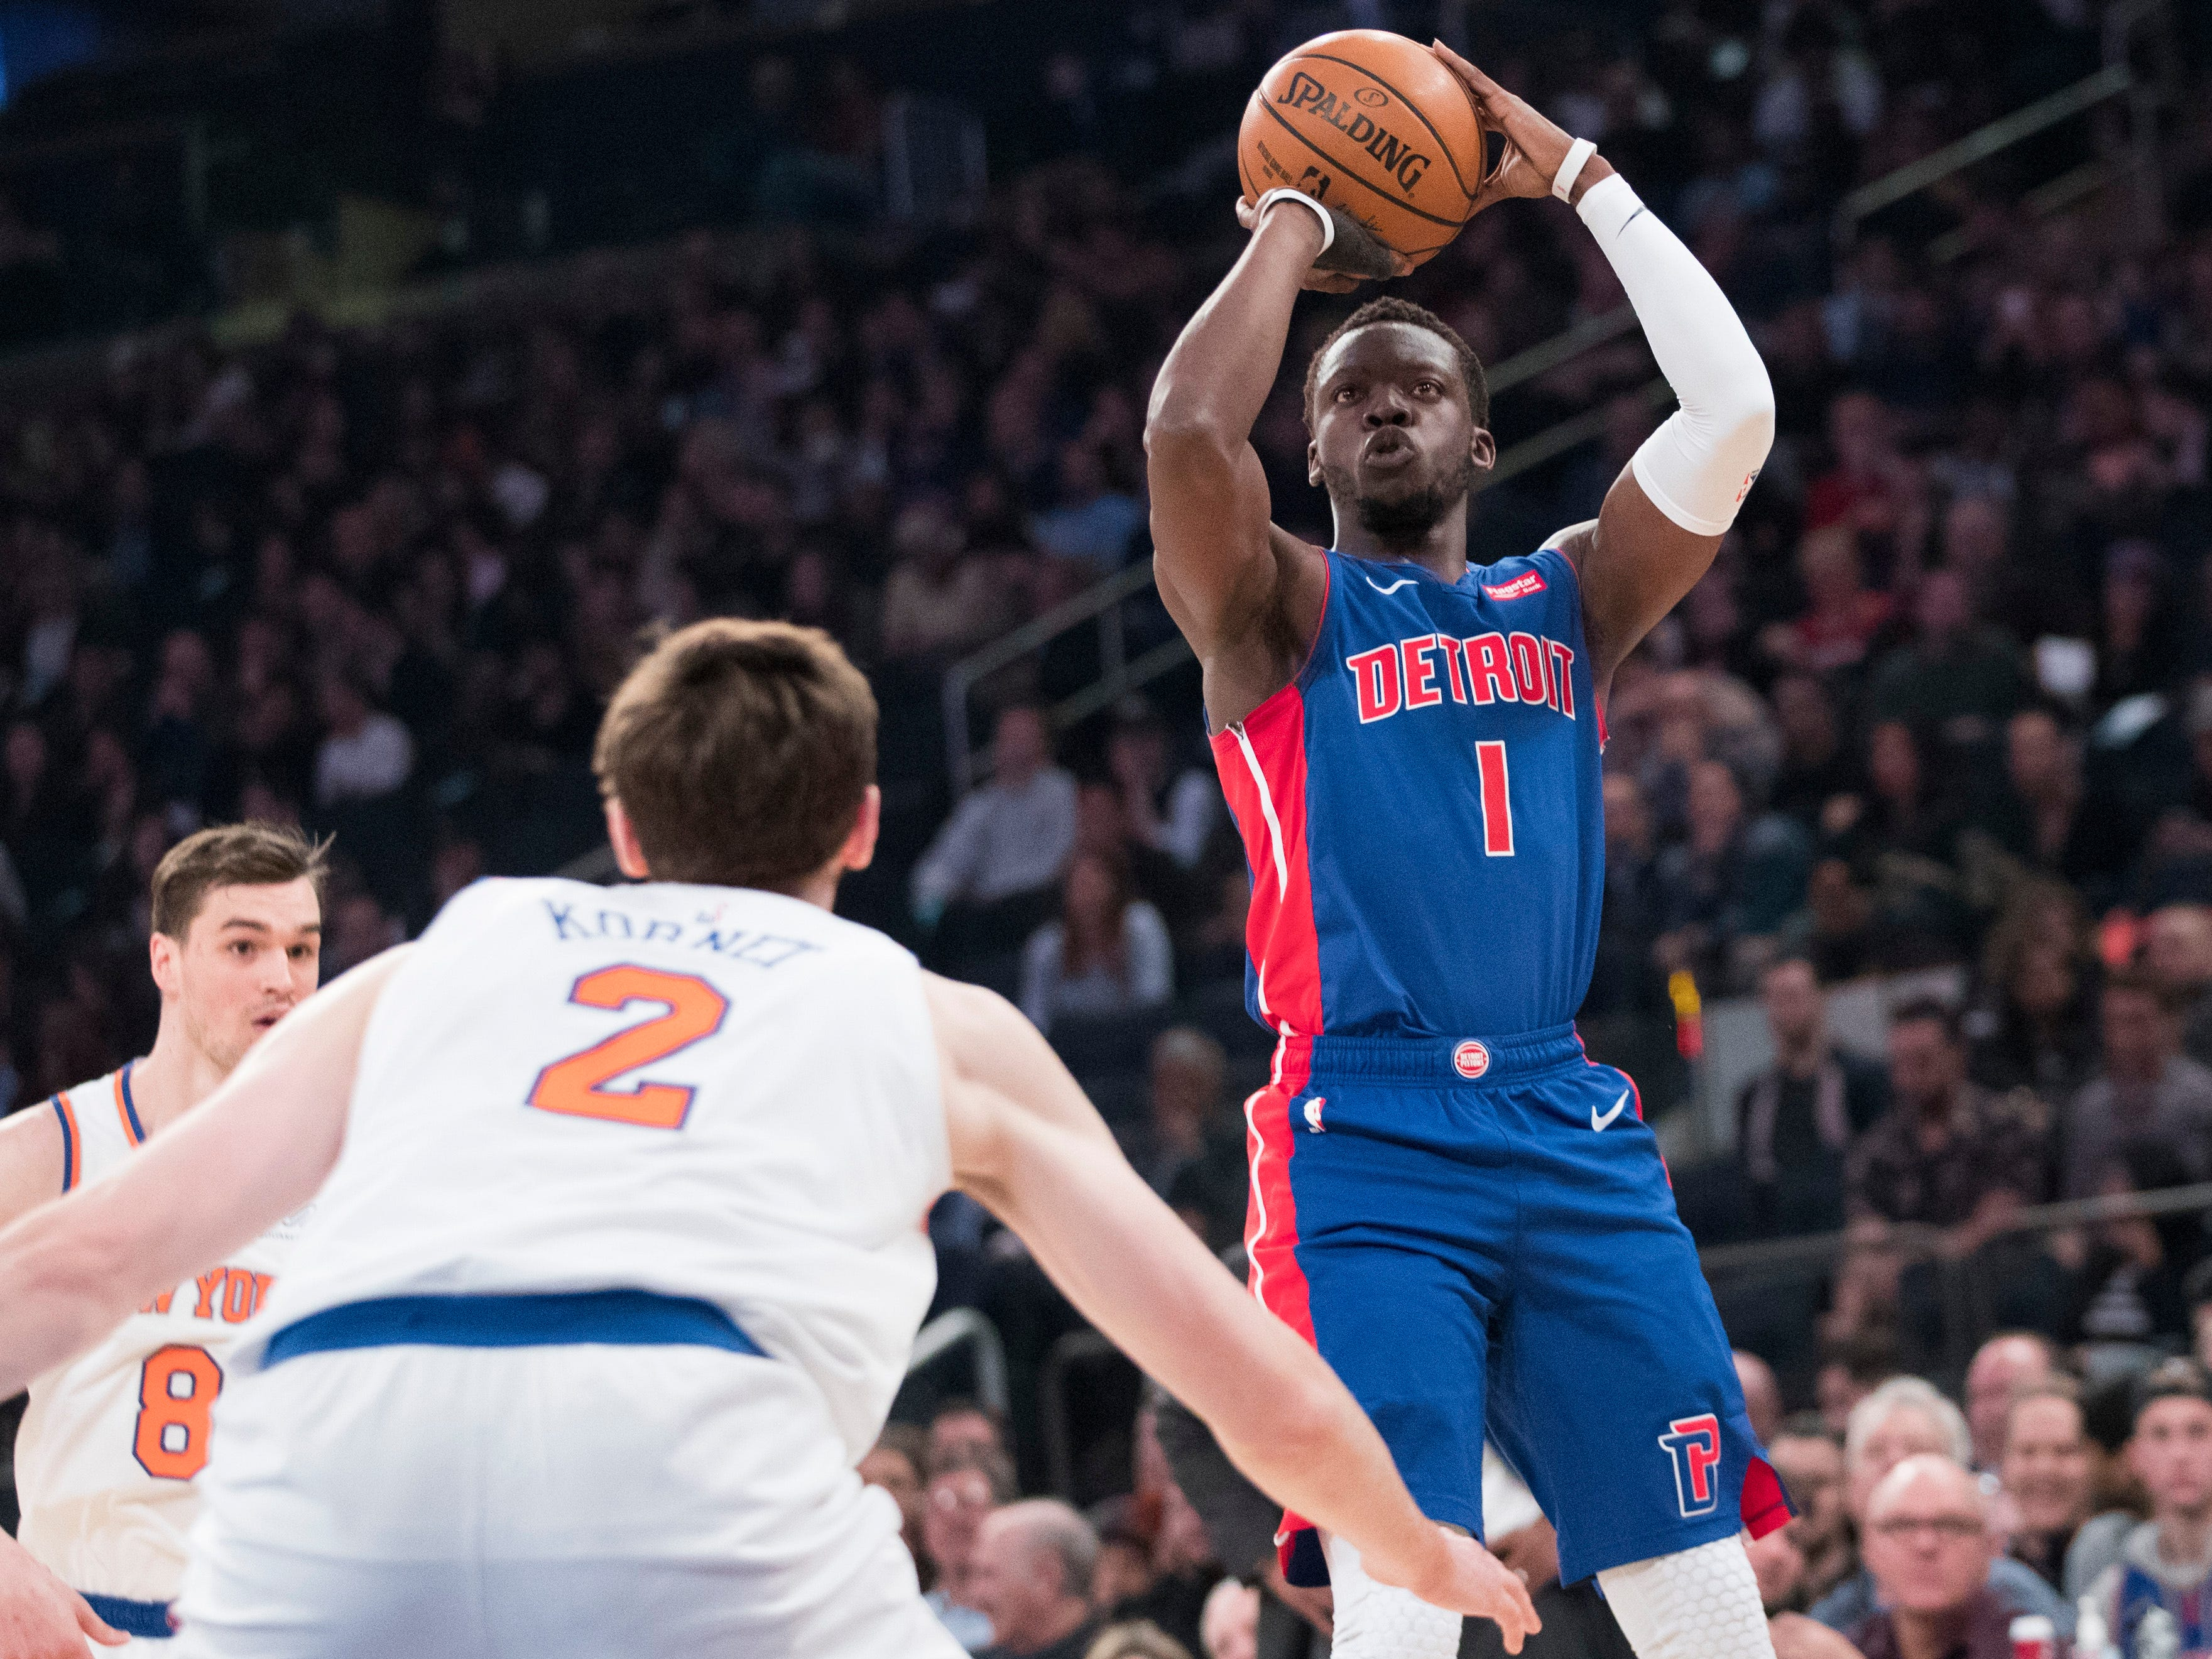 Detroit Pistons guard Reggie Jackson (1) shoots a 3-pointer over New York Knicks forward Luke Kornet (2) during the first half of an NBA basketball game Wednesday, April 10, 2019, at Madison Square Garden in New York.